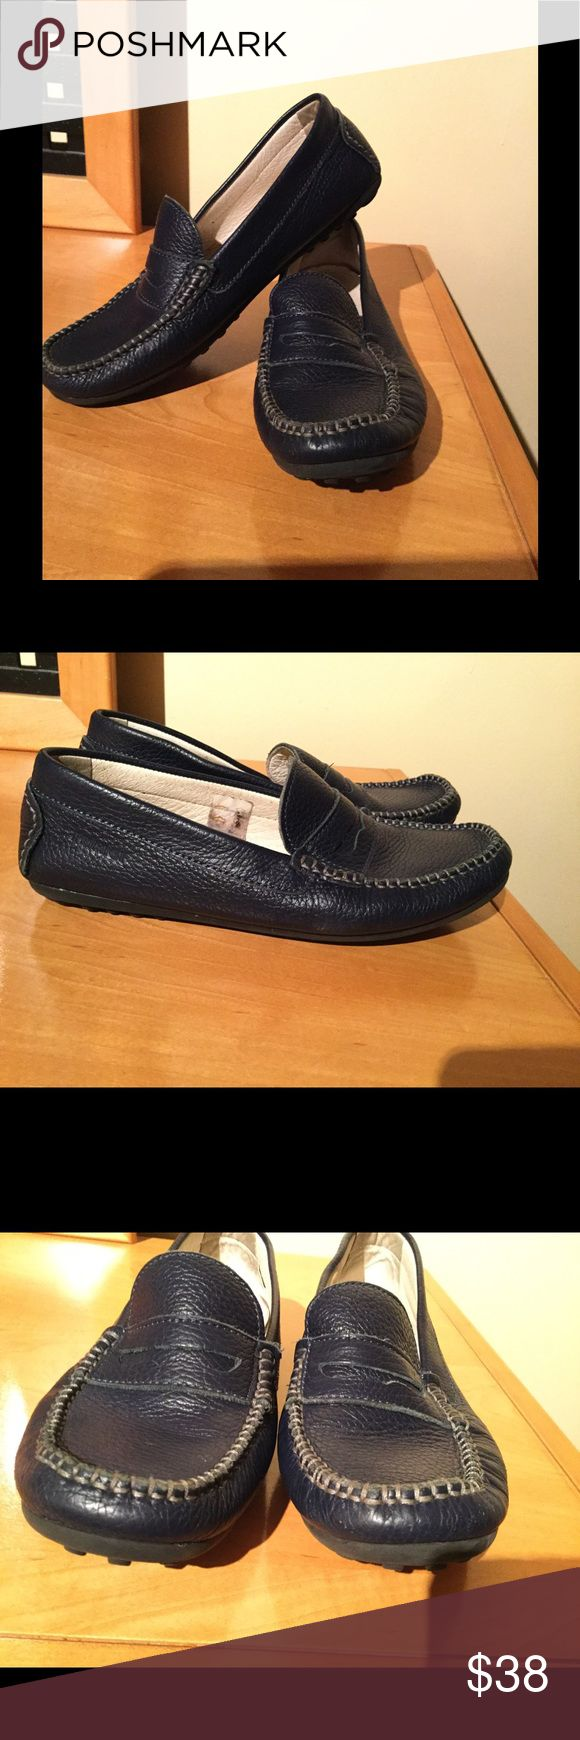 Primigi navy blue leather loafers Very good condition , no issues lots of life left on them , Sz 38 ,Sz 7 US . ❌Price firm Primigi Shoes Flats & Loafers